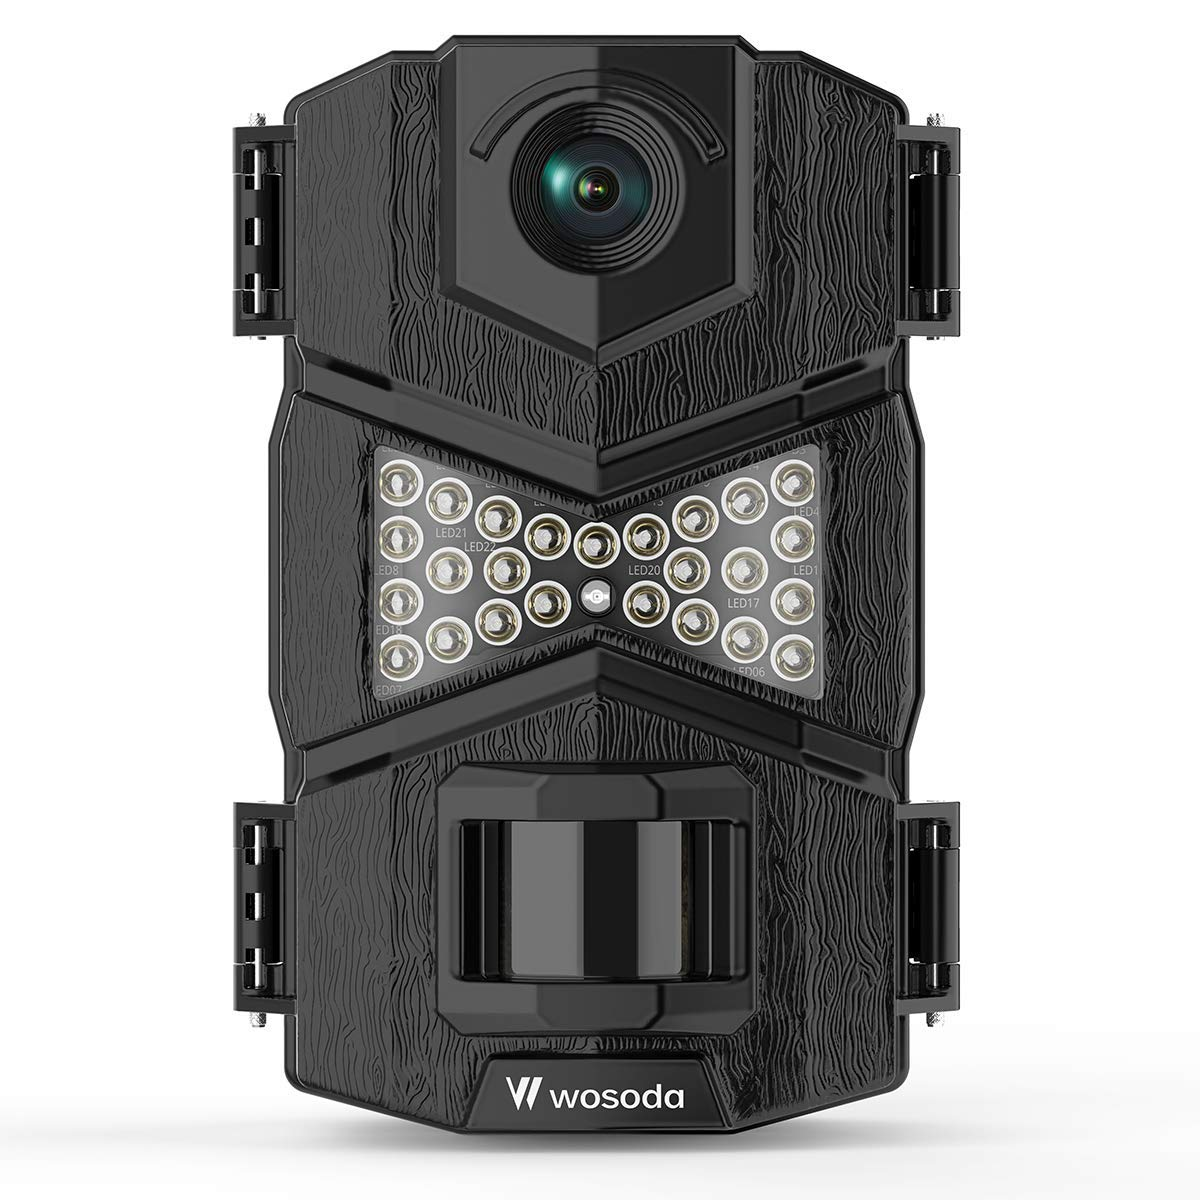 WOSODA 16MP 1080P Trail Camera, with Upgraded 850nm IR LEDs Night Vision 260ft Wildlife Camera, 2.0 LCD for Home Security Wildlife Monitoring Hunting Black